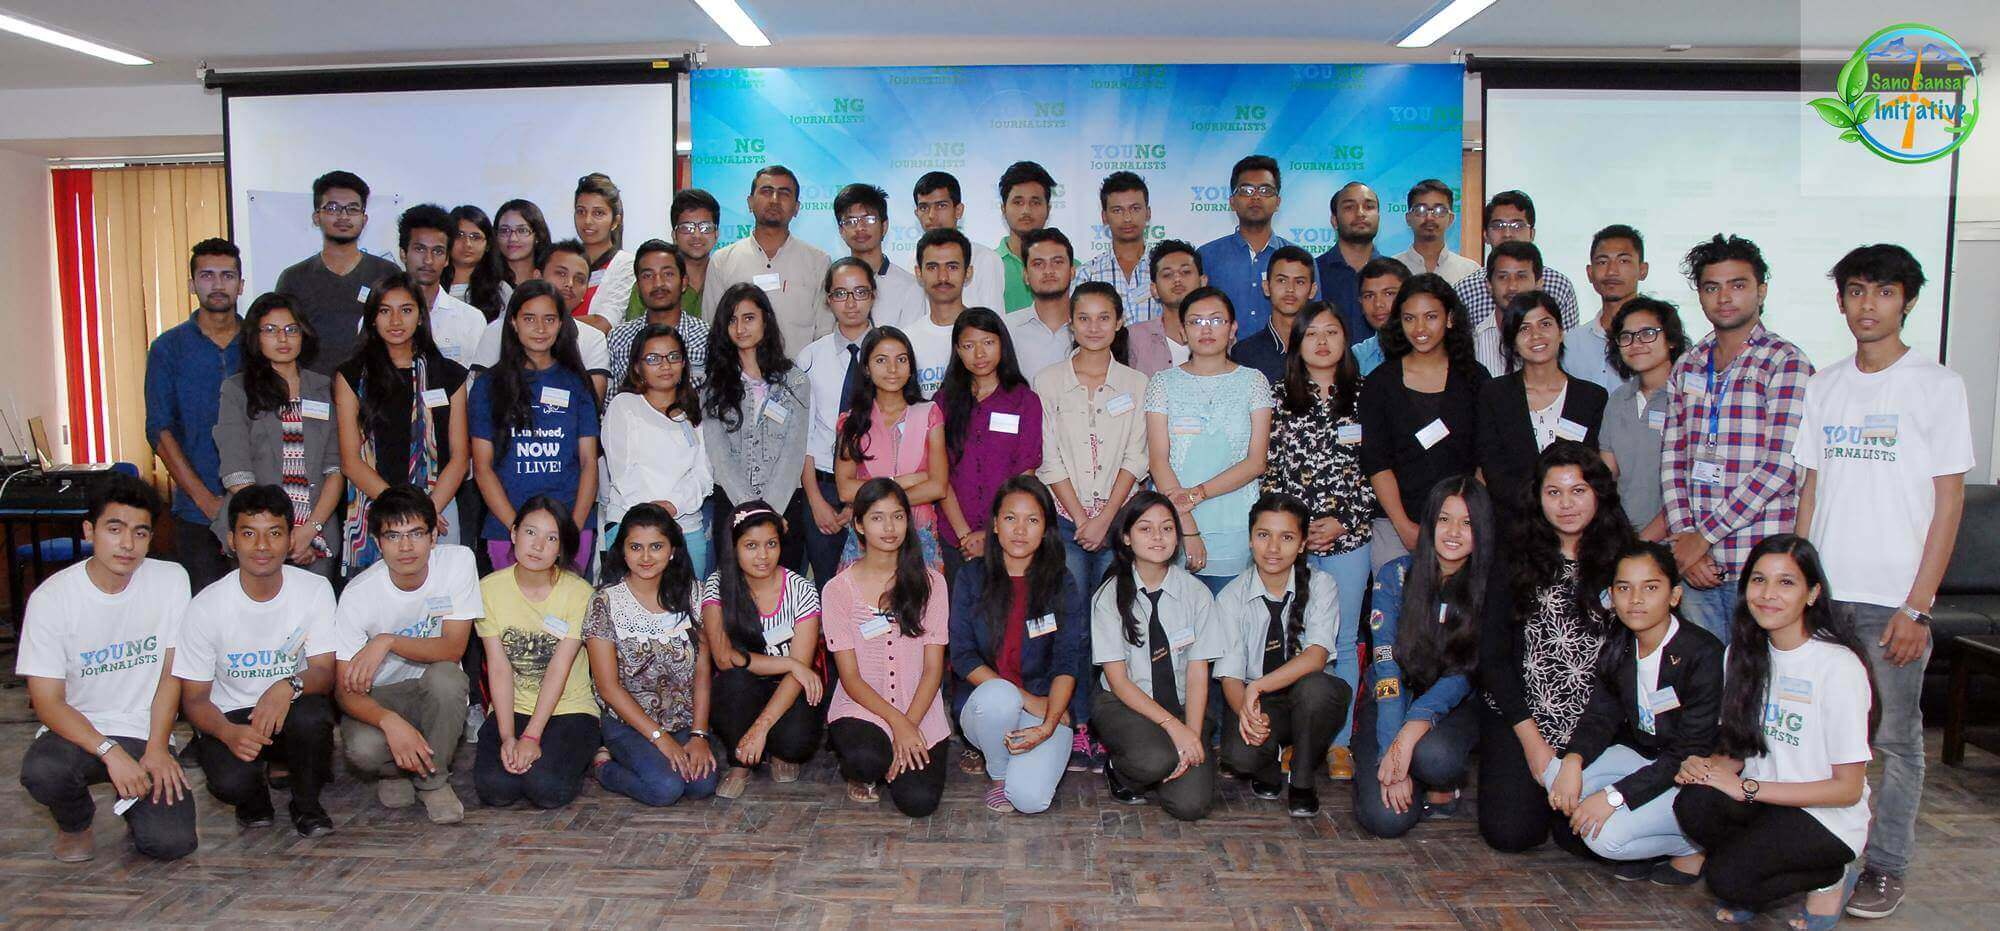 young-journalists-group-2015